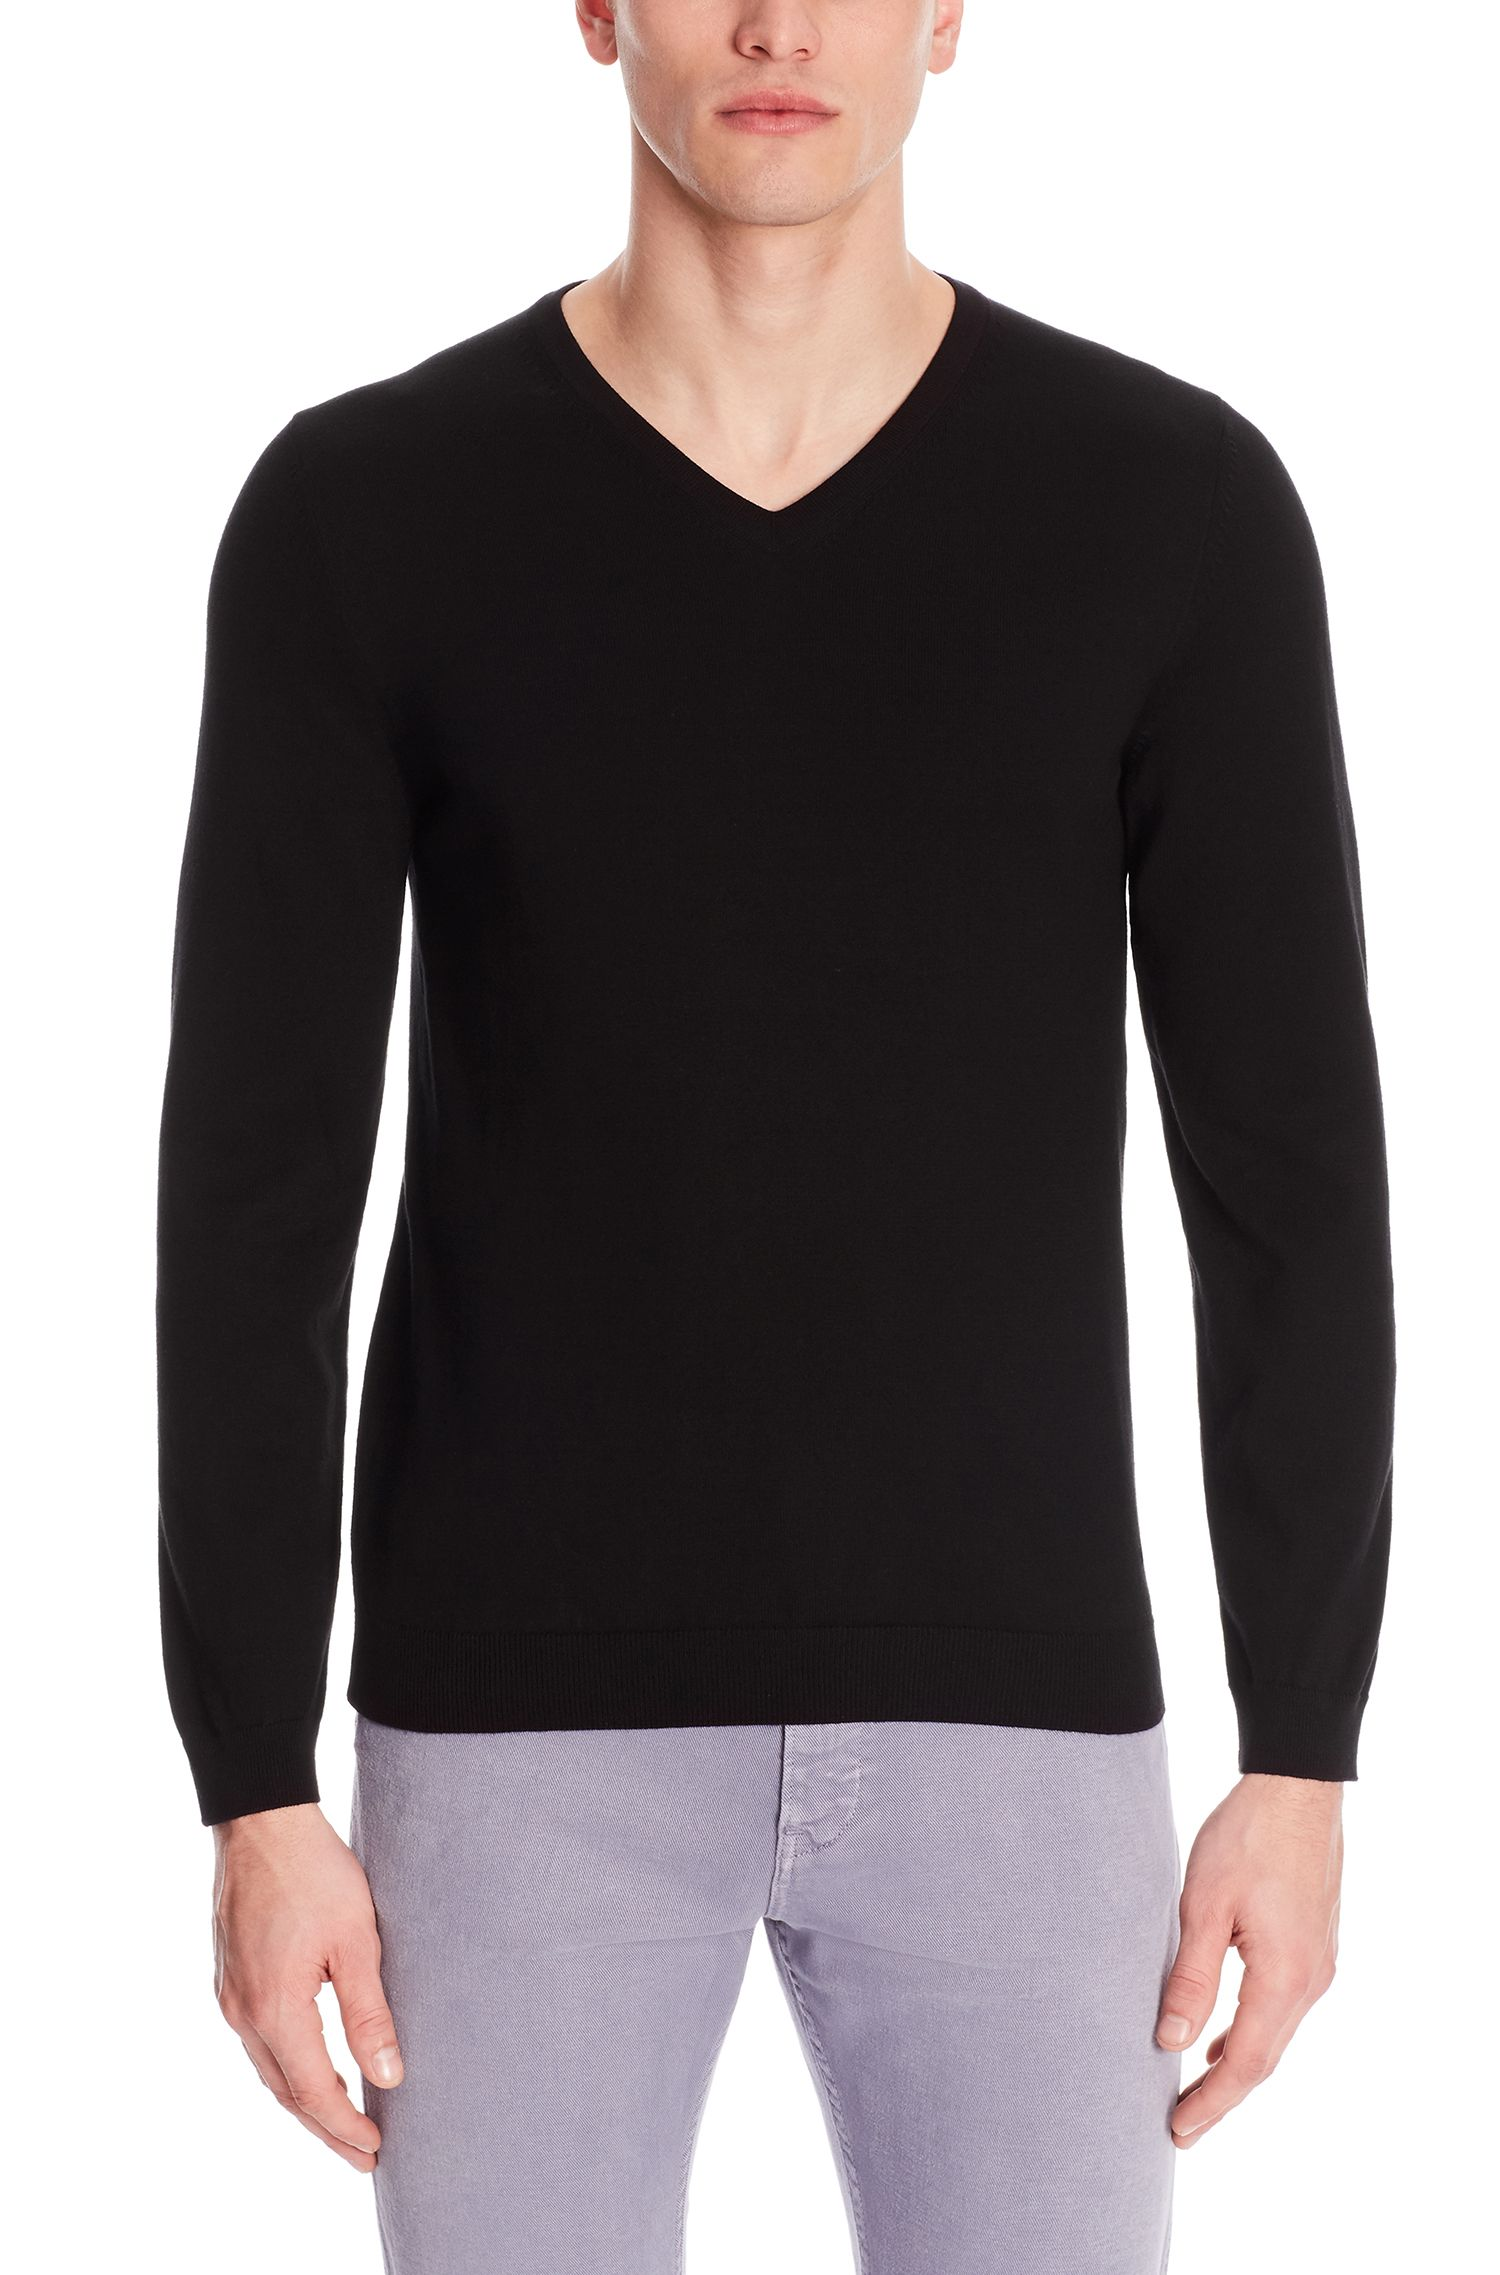 'Fioro' | Italian Cotton V-Neck Sweater